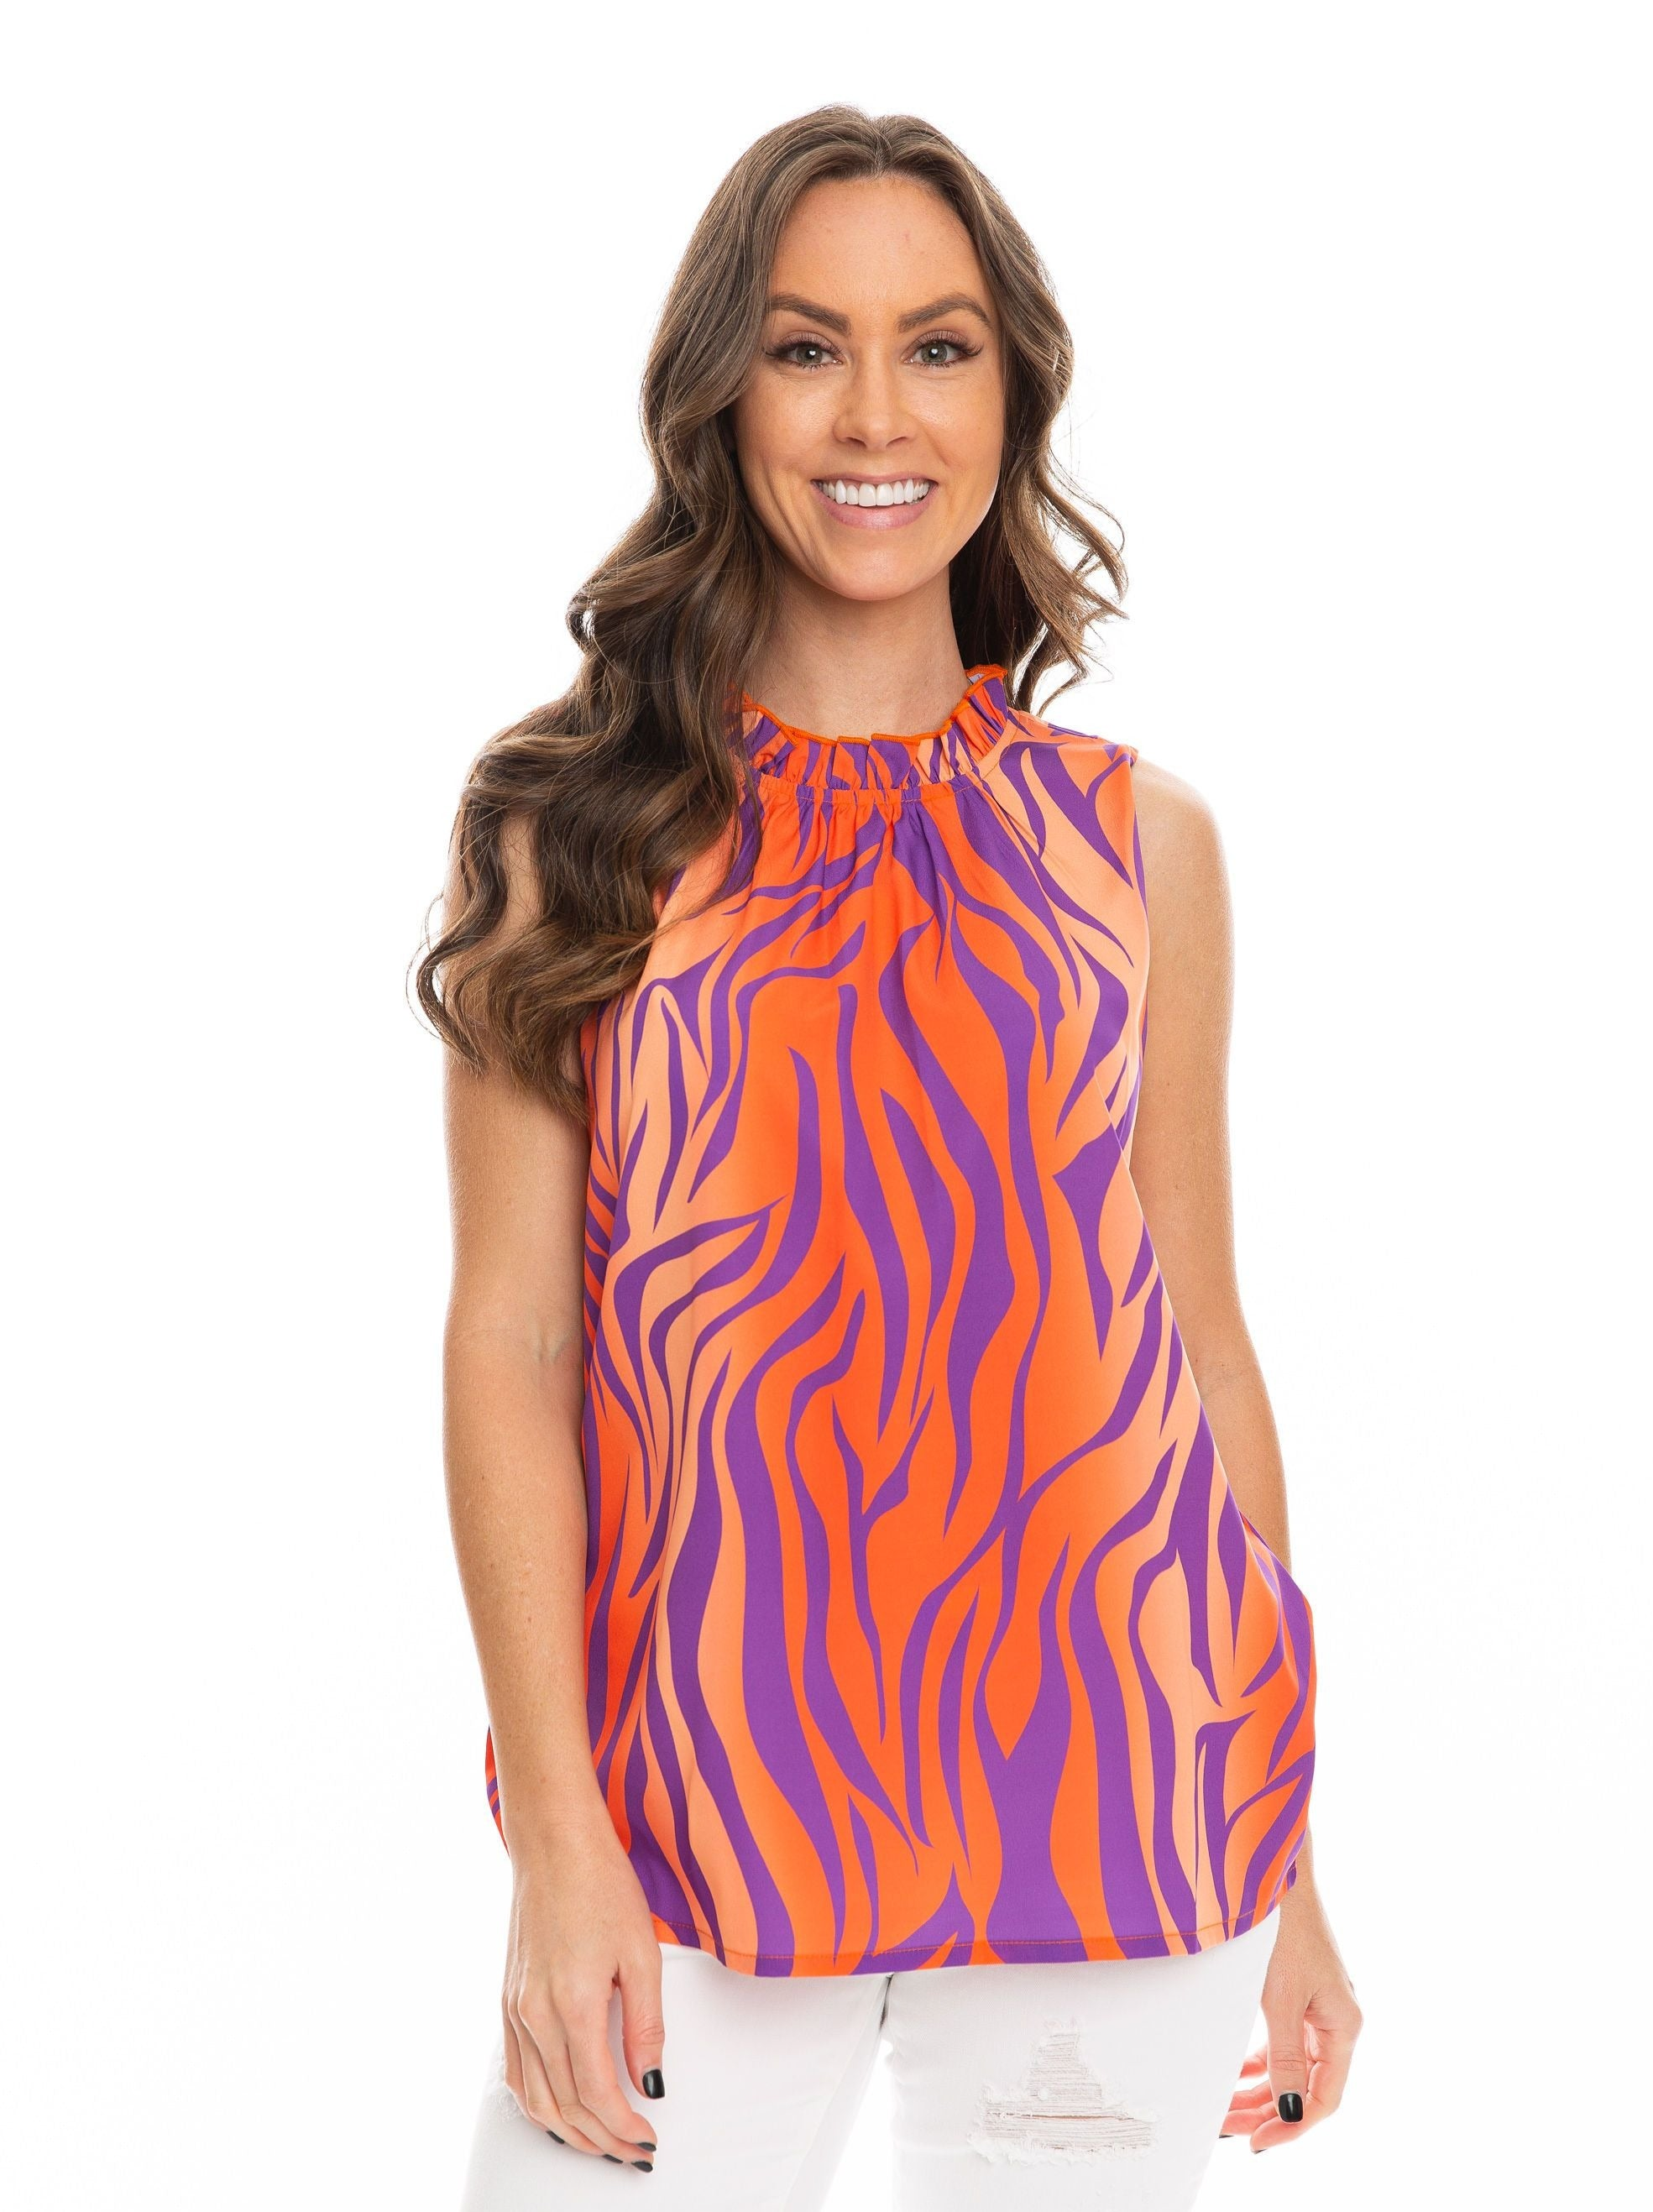 The Tiger Stripe Ruffle Tank | Orange + Purple